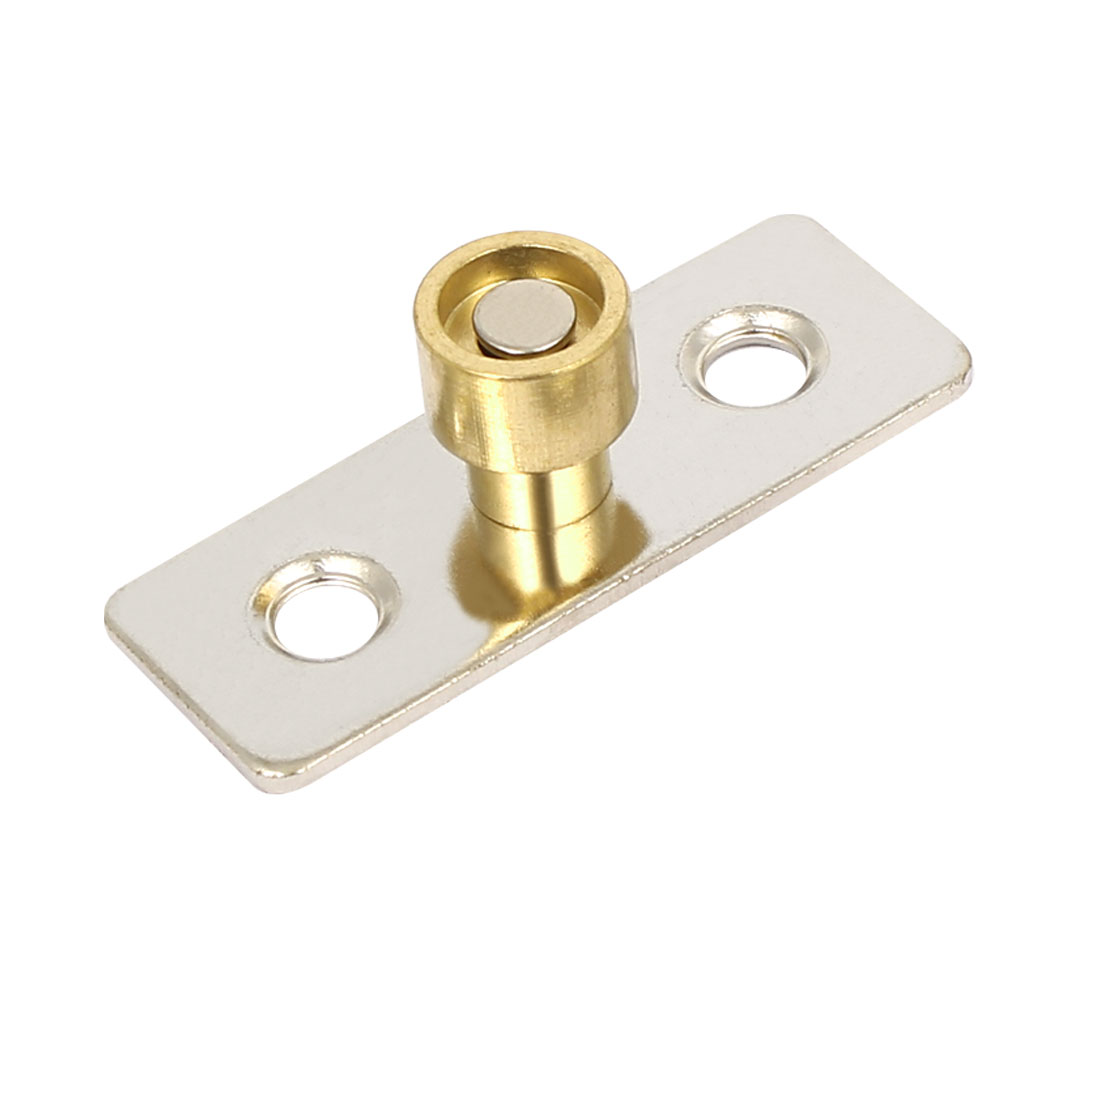 12mm Dia Wooden Sliding Door Bearing Pulley Retainer Guide Locator